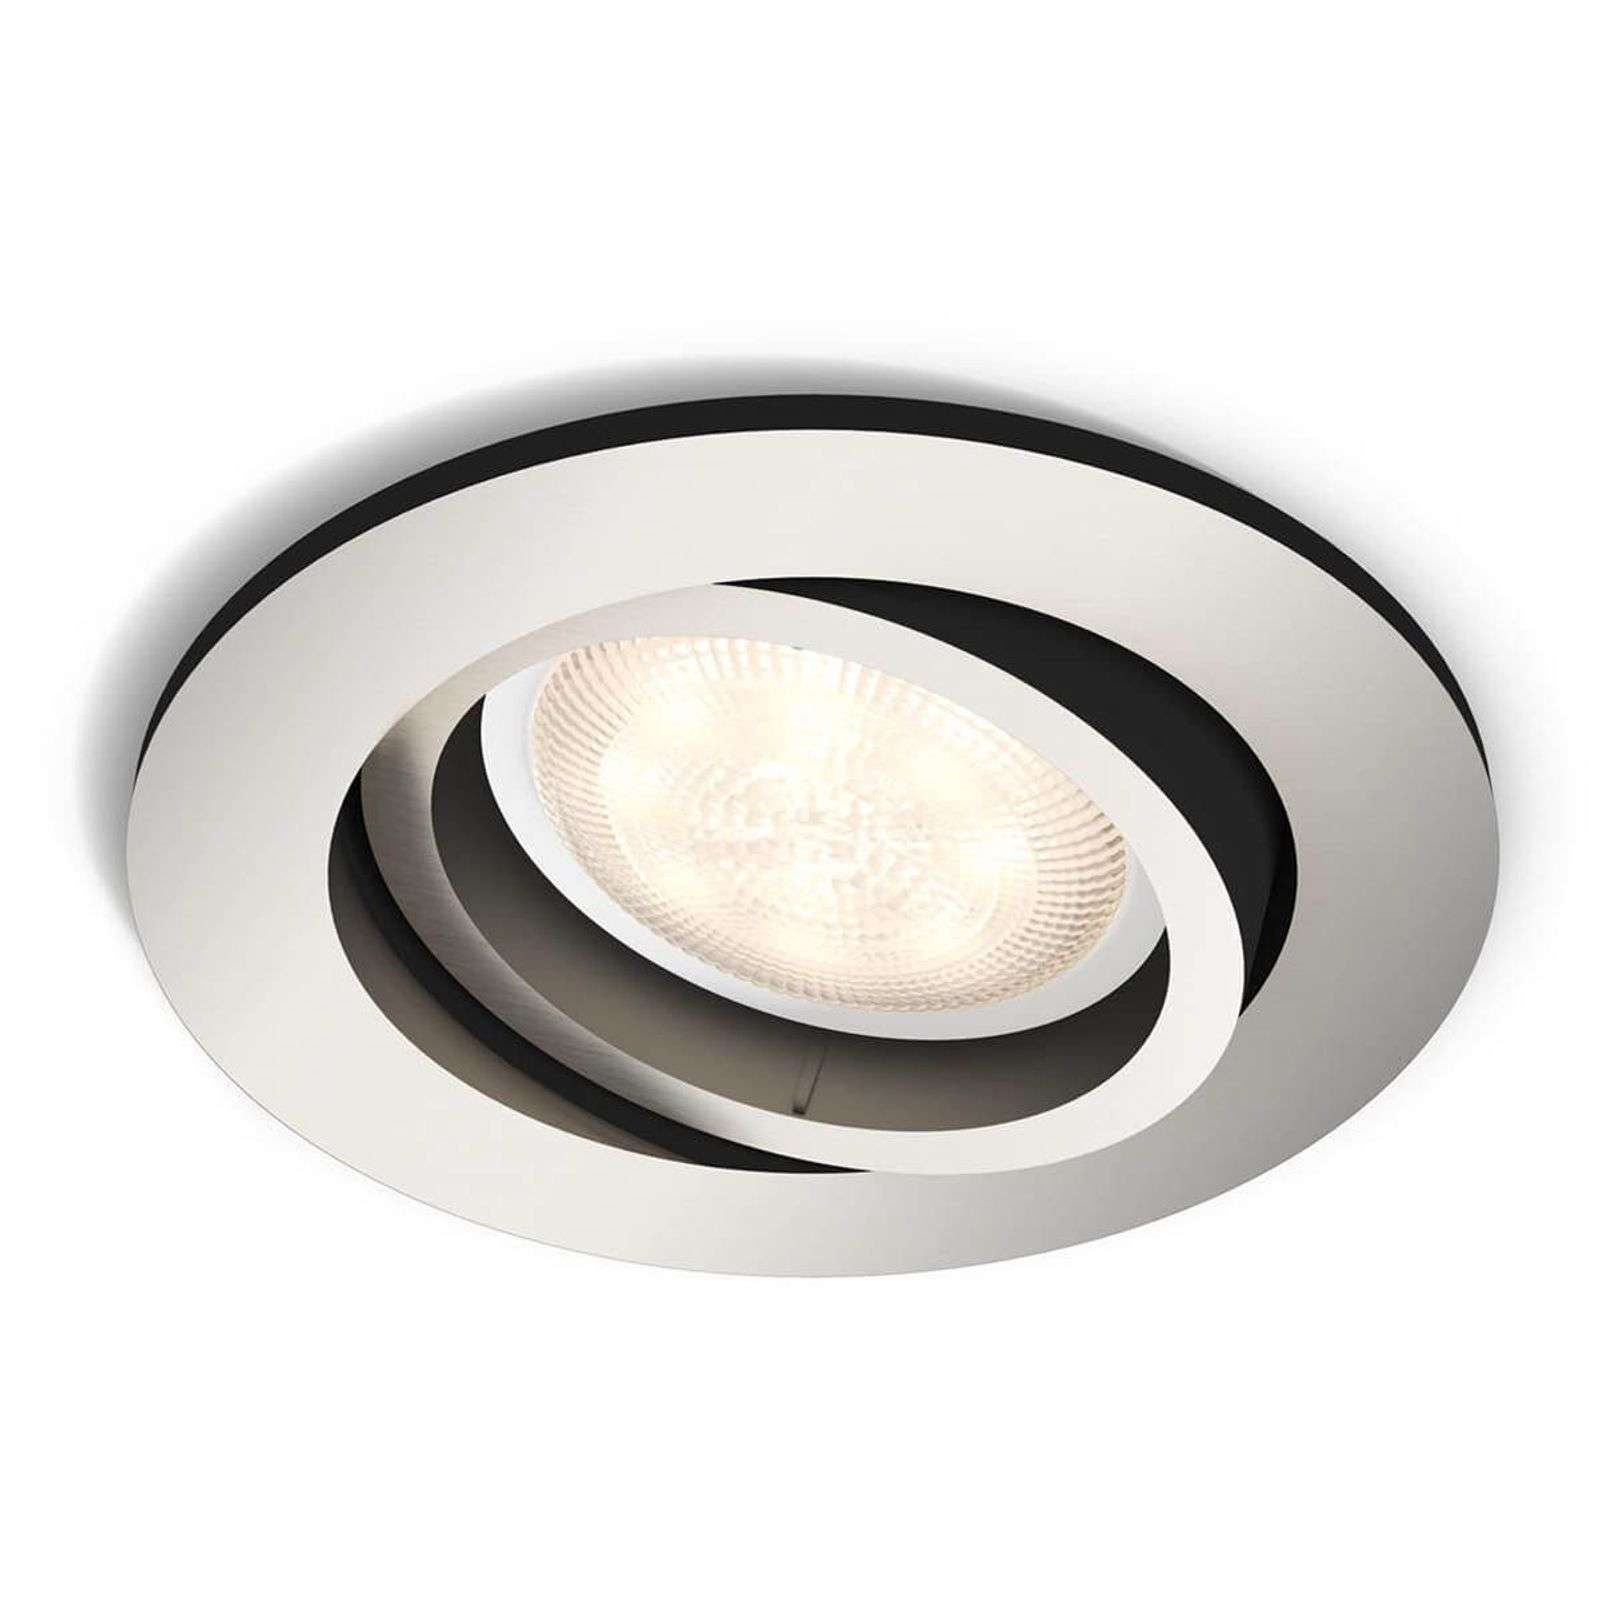 Spot encastrable LED Shellbark nickel, Warmglow